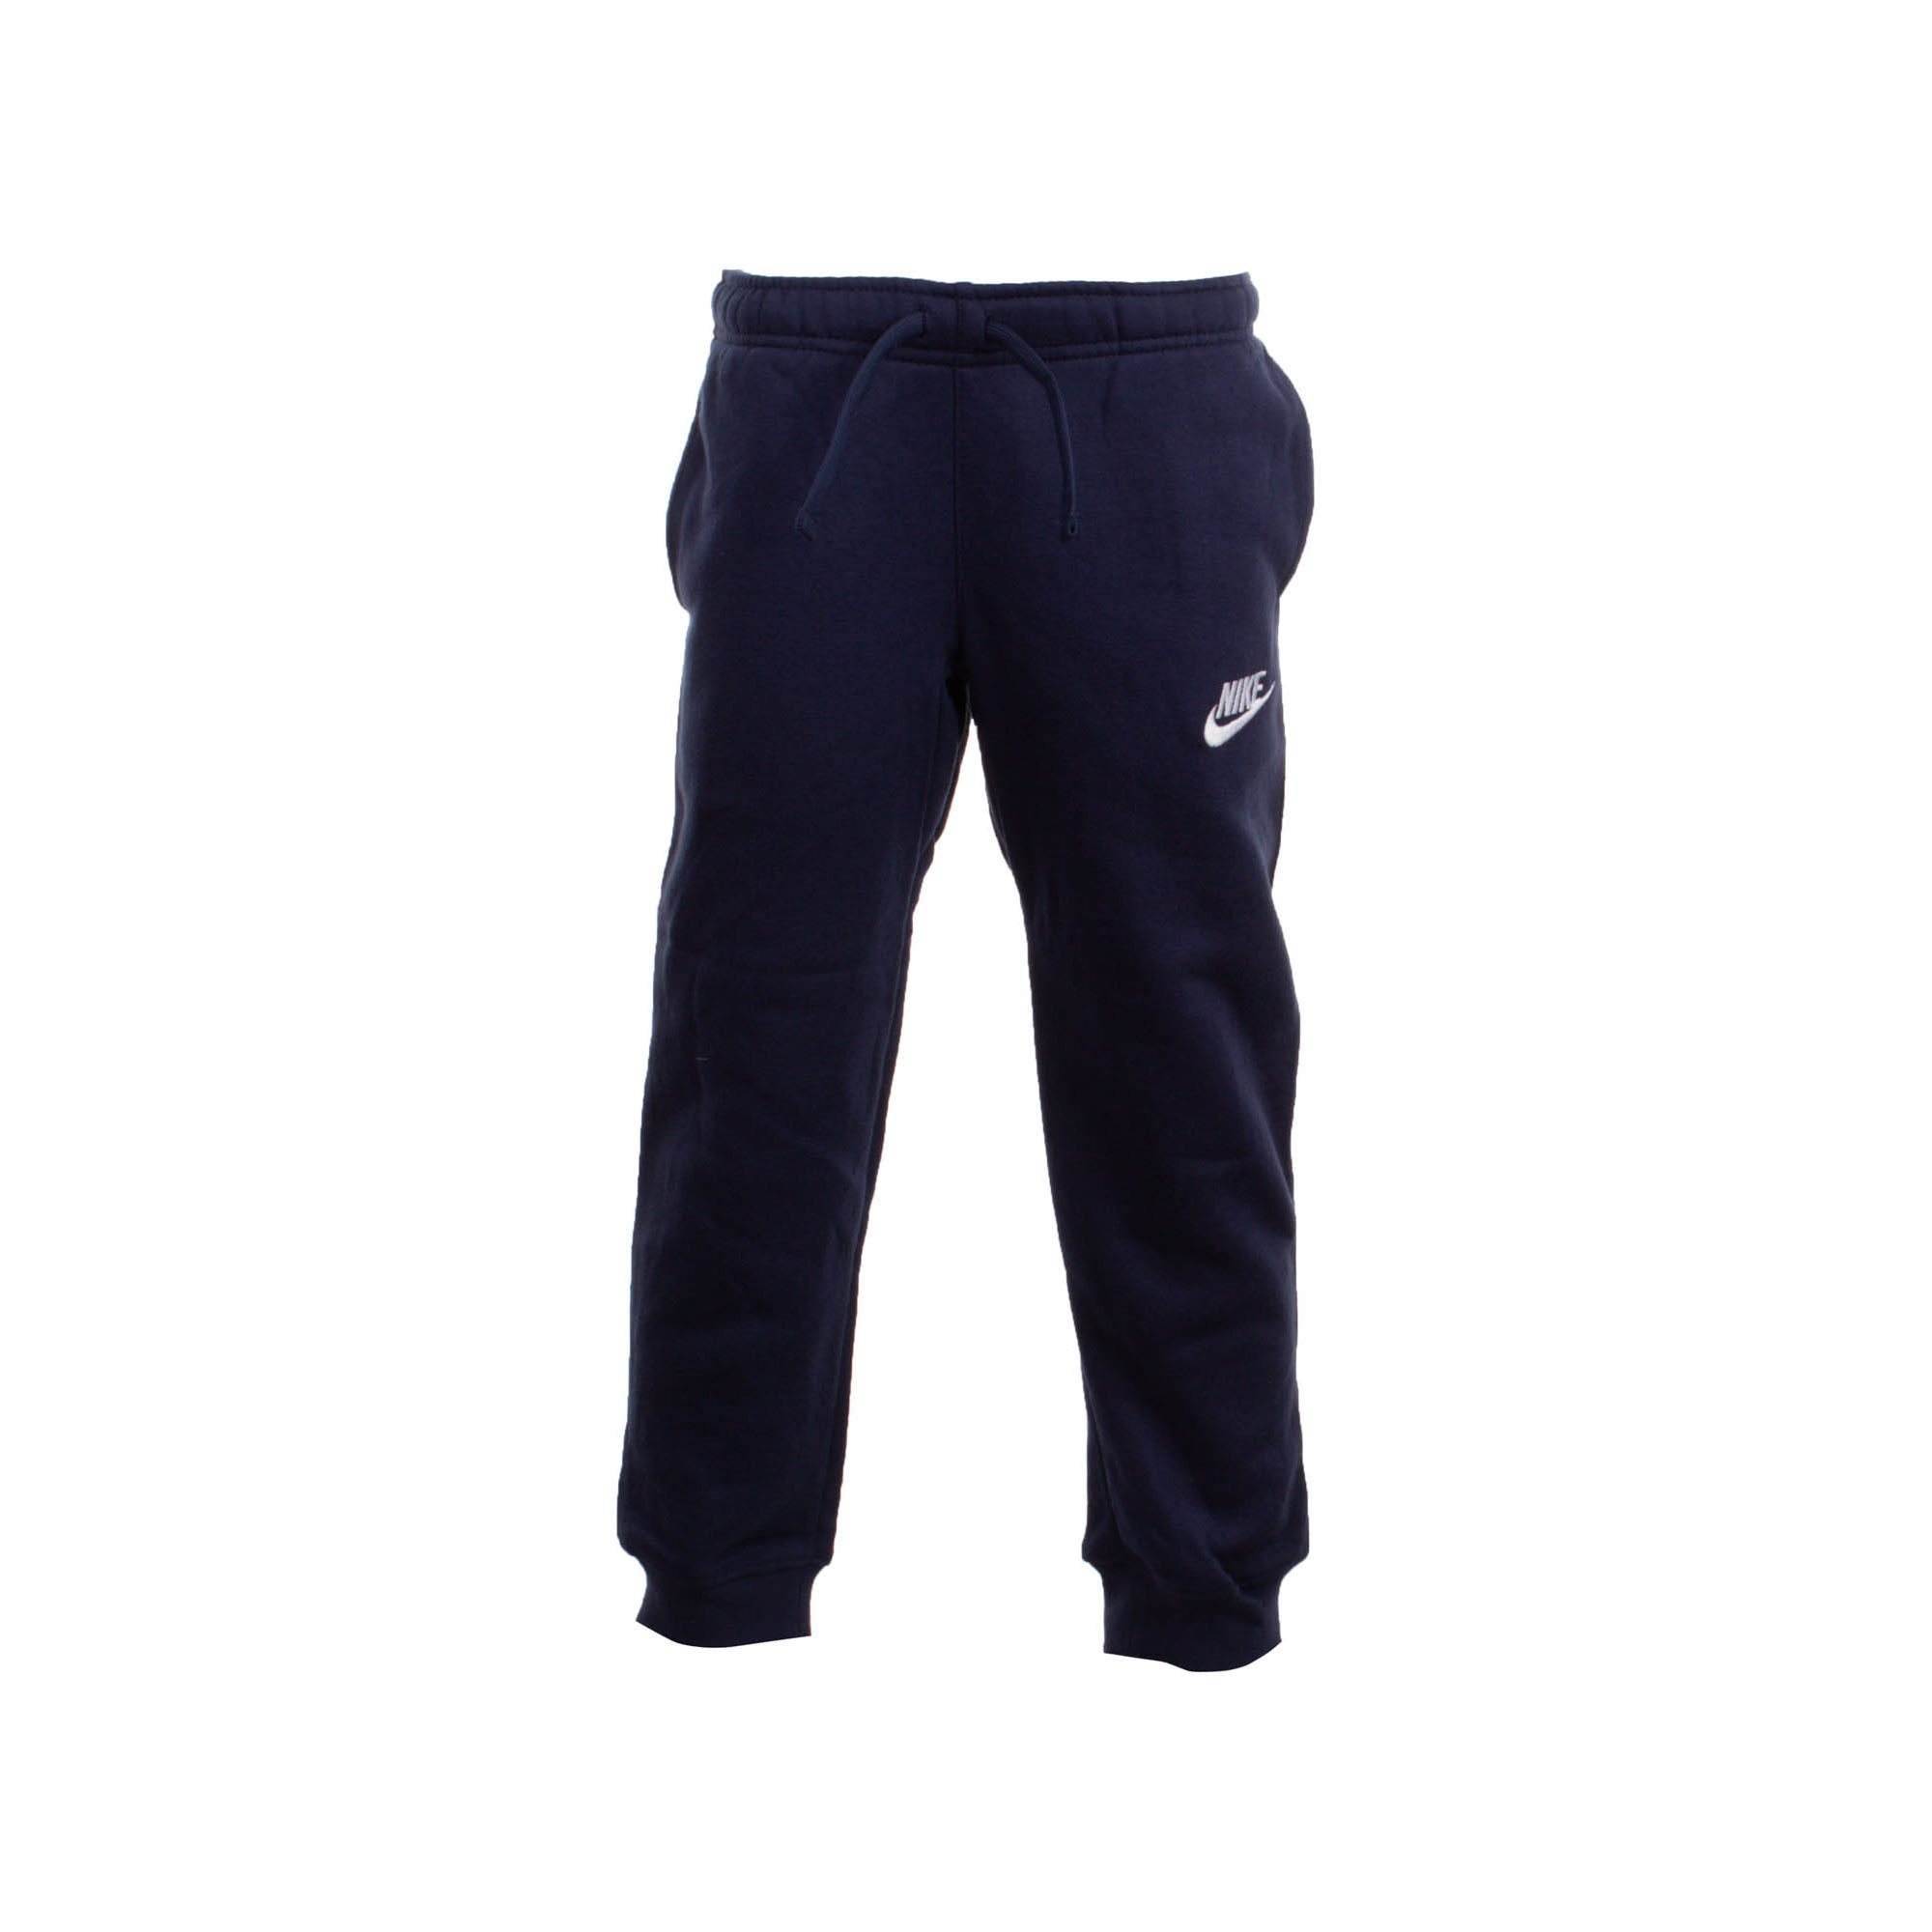 PANTALON LARGO CLUB FLEECE RIB CUFF PANT MARINO